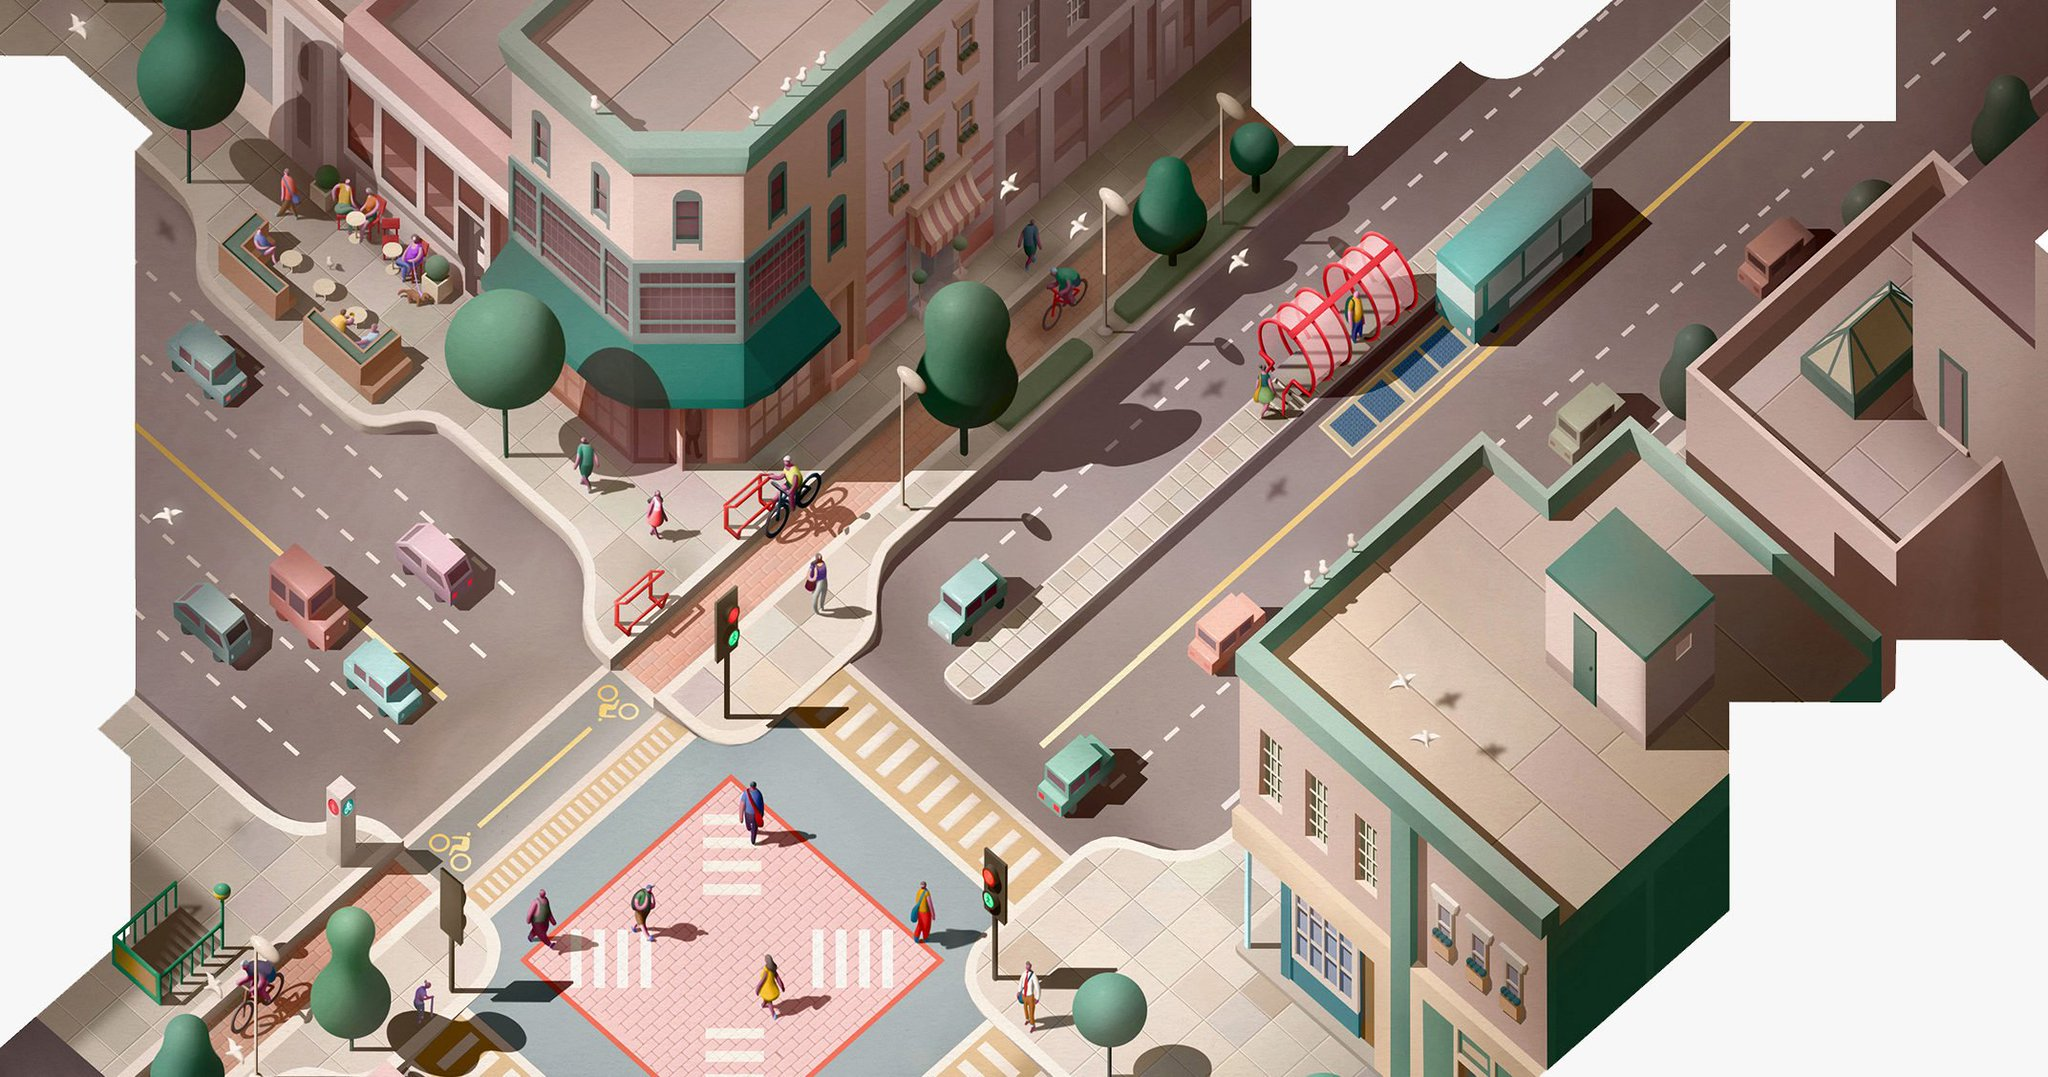 16 ways to design better intersections—and better cities: https://t.co/dGOji32TQ4 https://t.co/X8CkgAzC2a